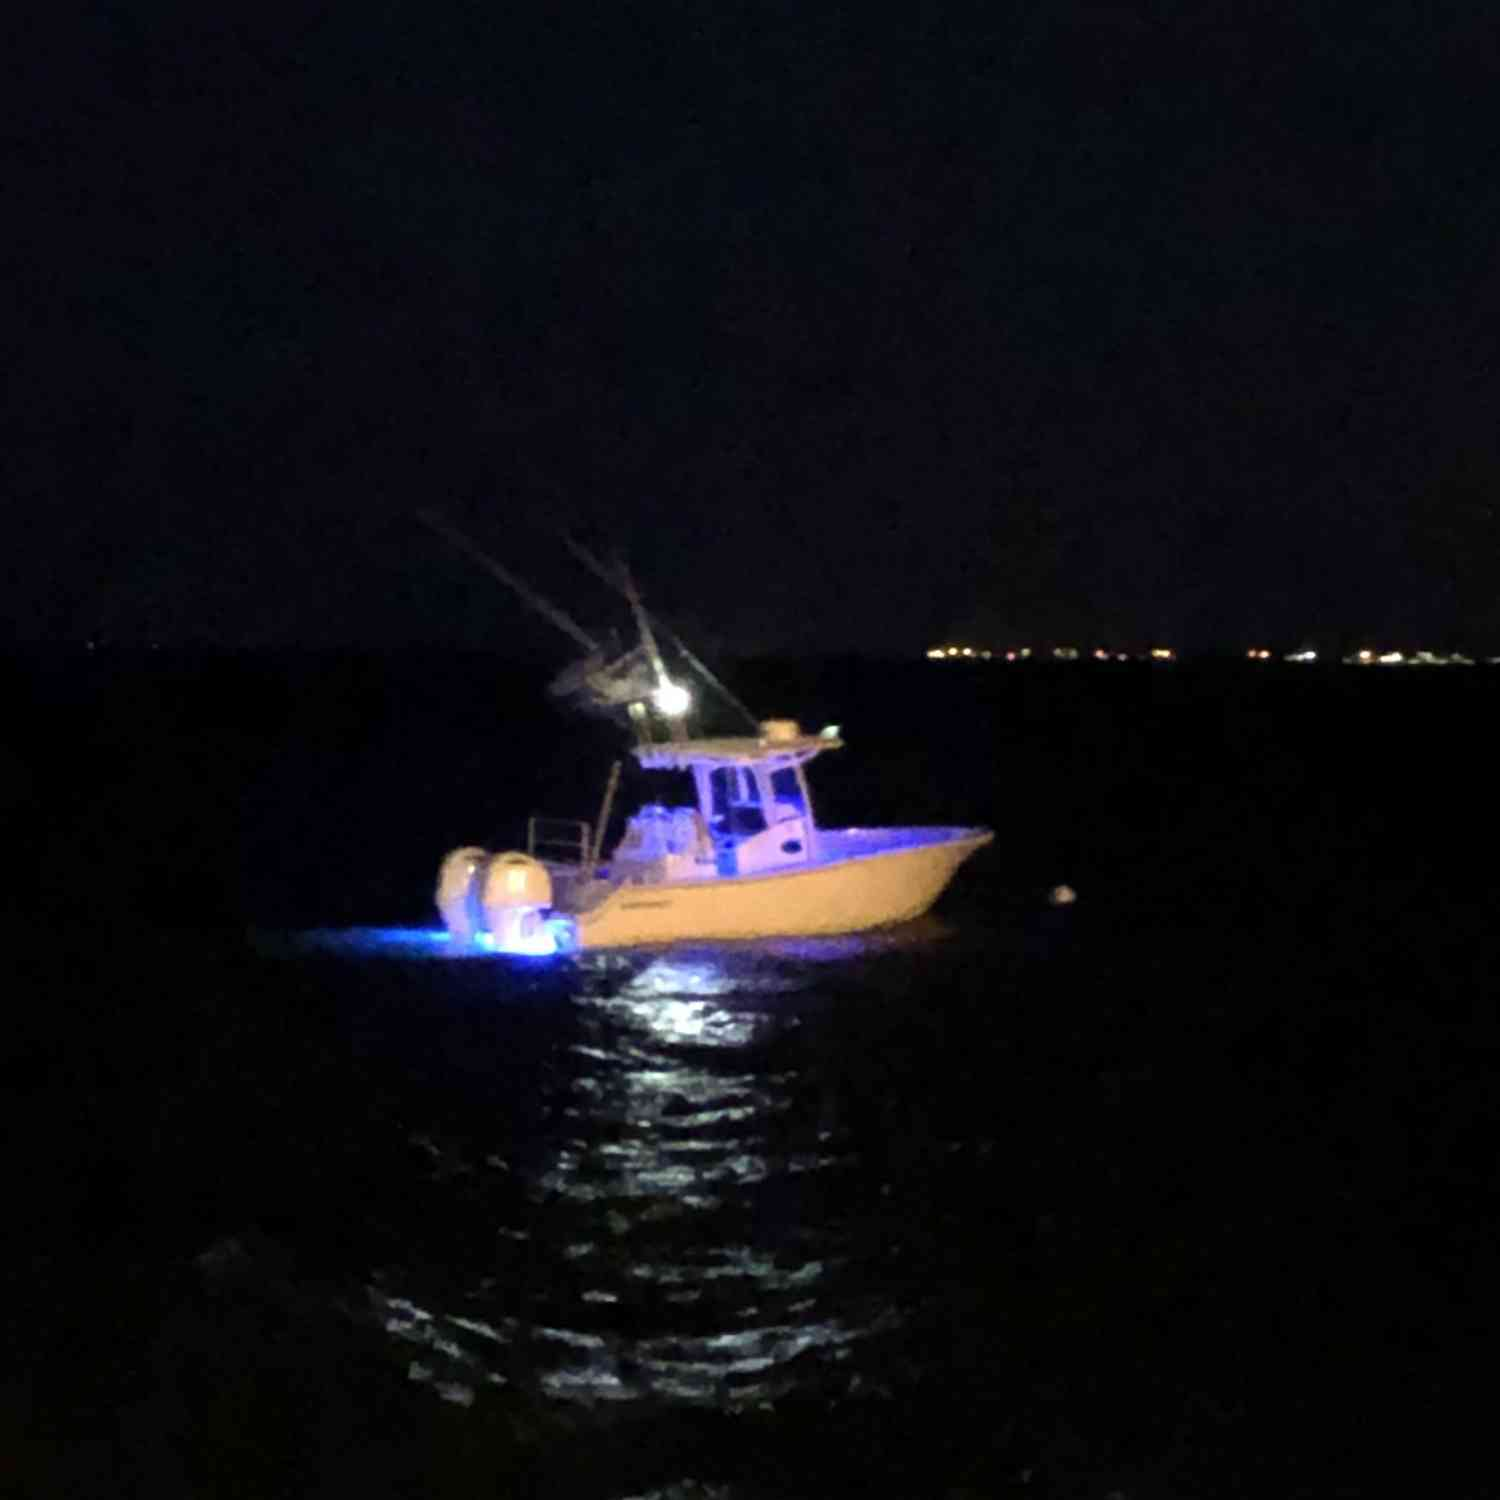 Title: Glowing In The Night - On board their Sportsman Open 282TE Center Console - Location: Bayville NJ. Participating in the Photo Contest #SportsmanOctober2020